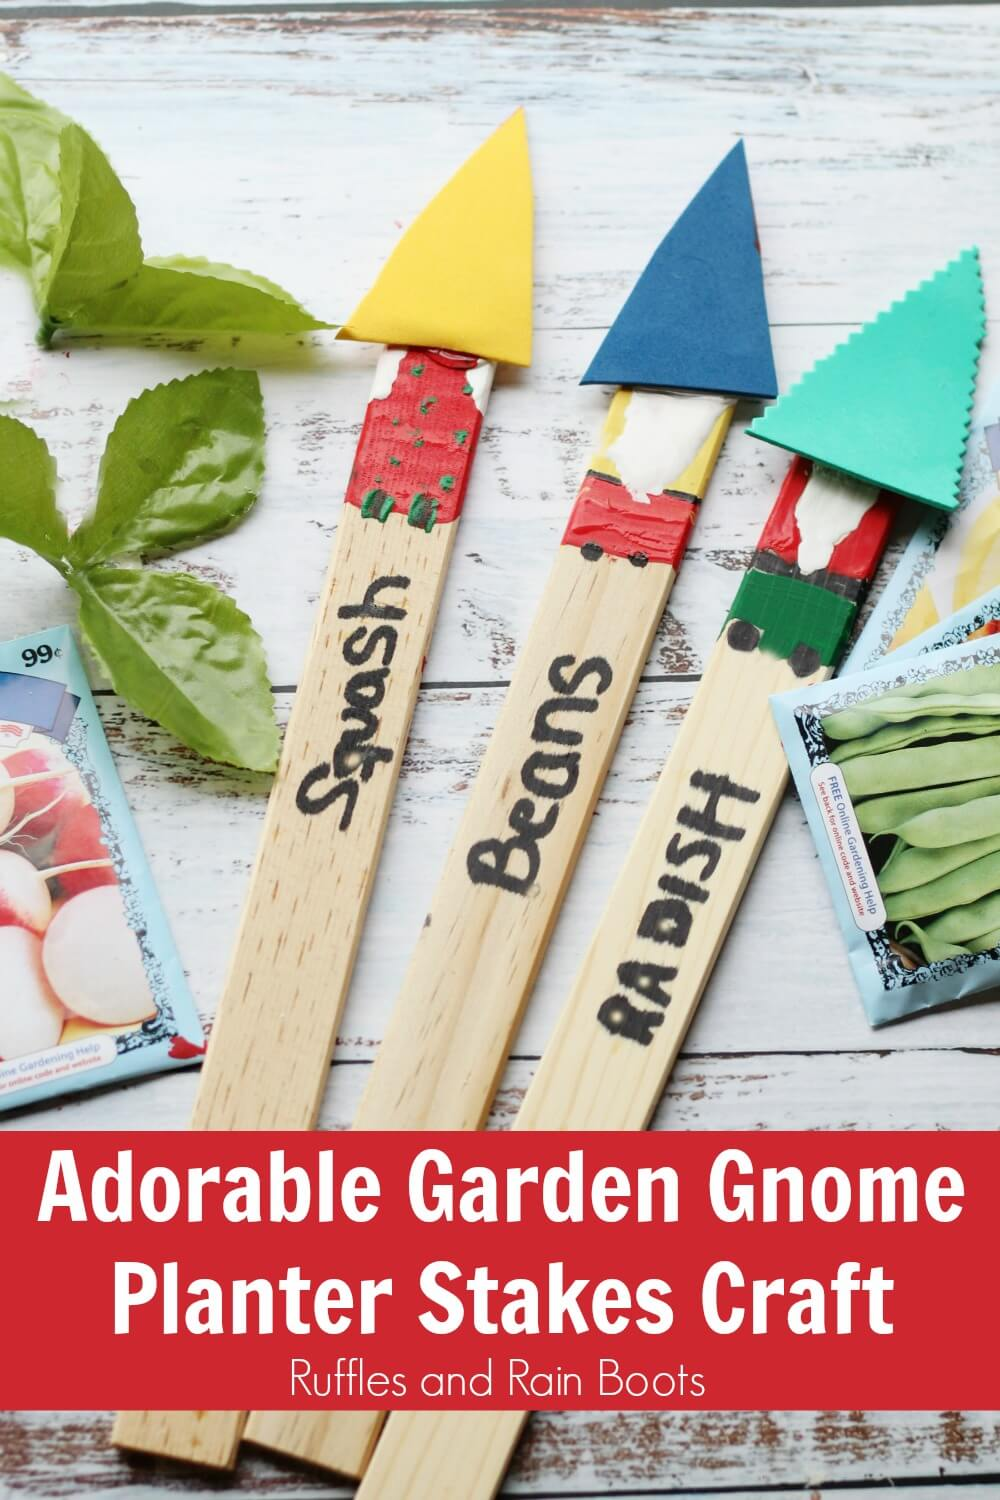 close up of garden gnome craft with text Adorable Garden Gnome Planter Stakes Craft